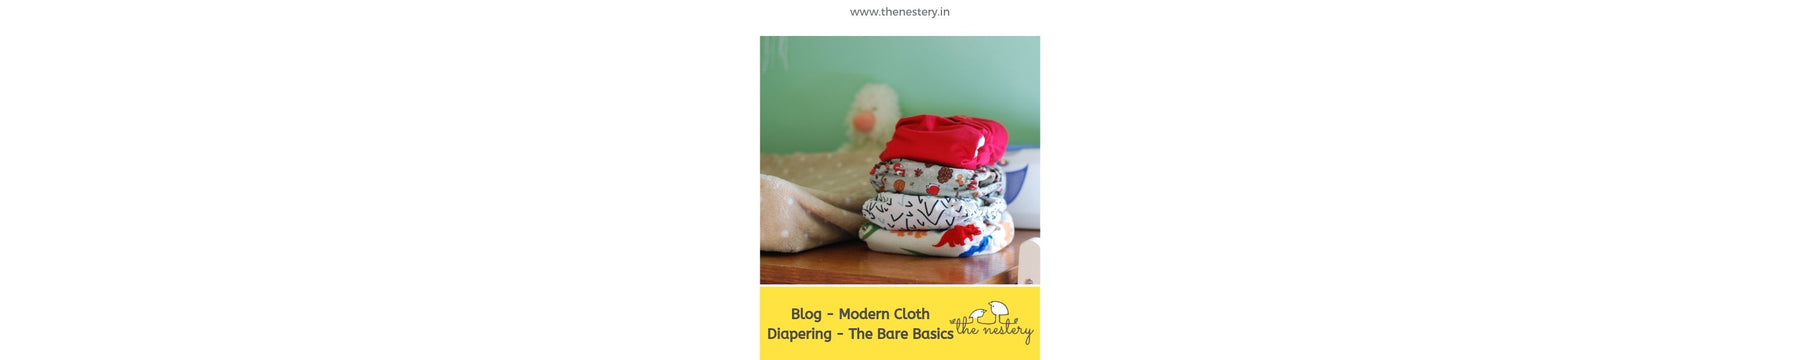 Modern Cloth Diapering - The Bare Basics